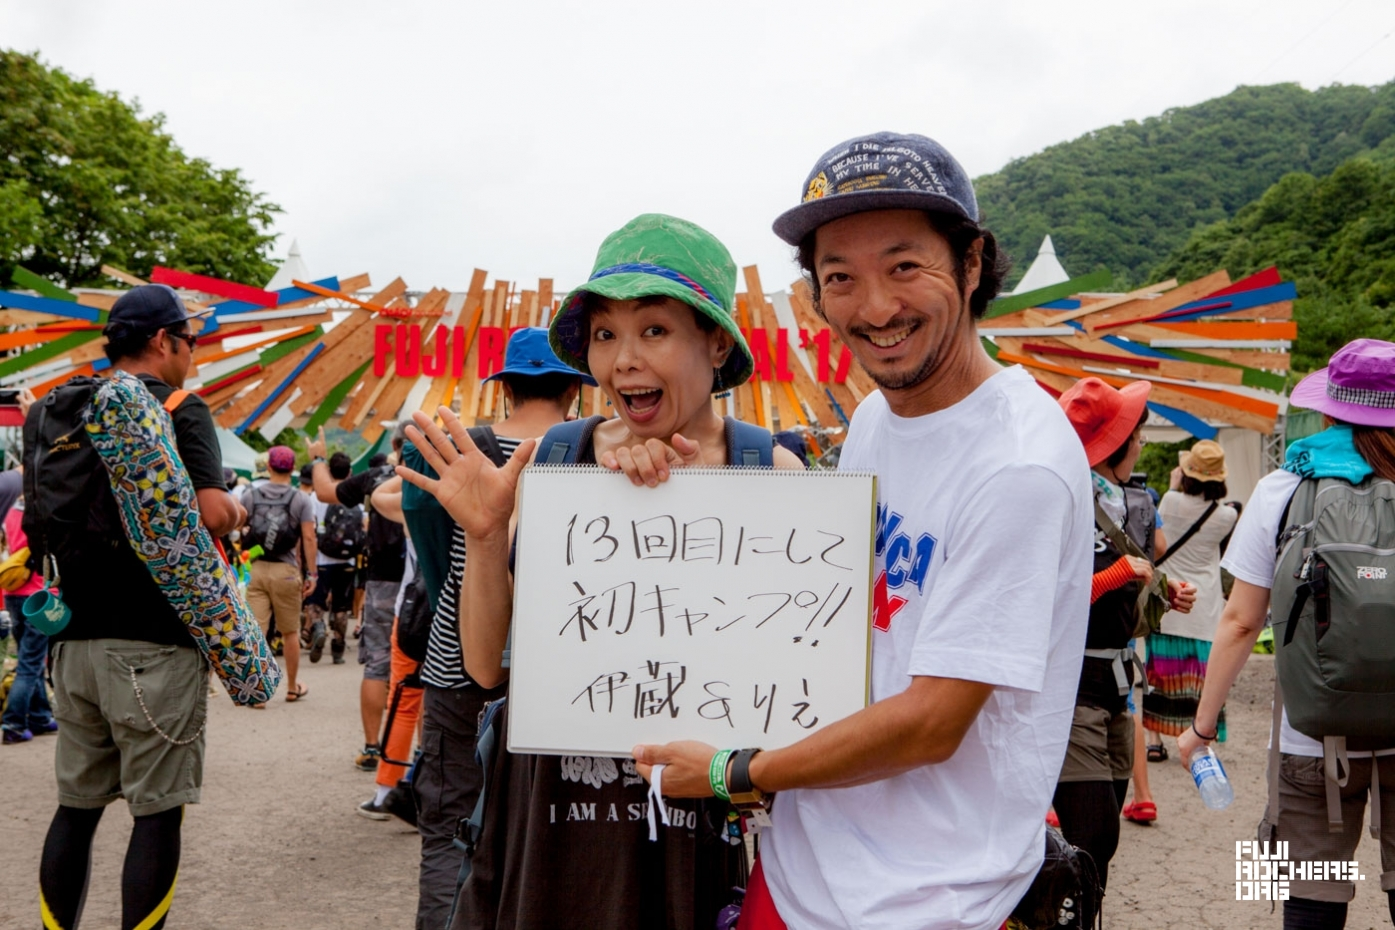 Message for Fujirock #19